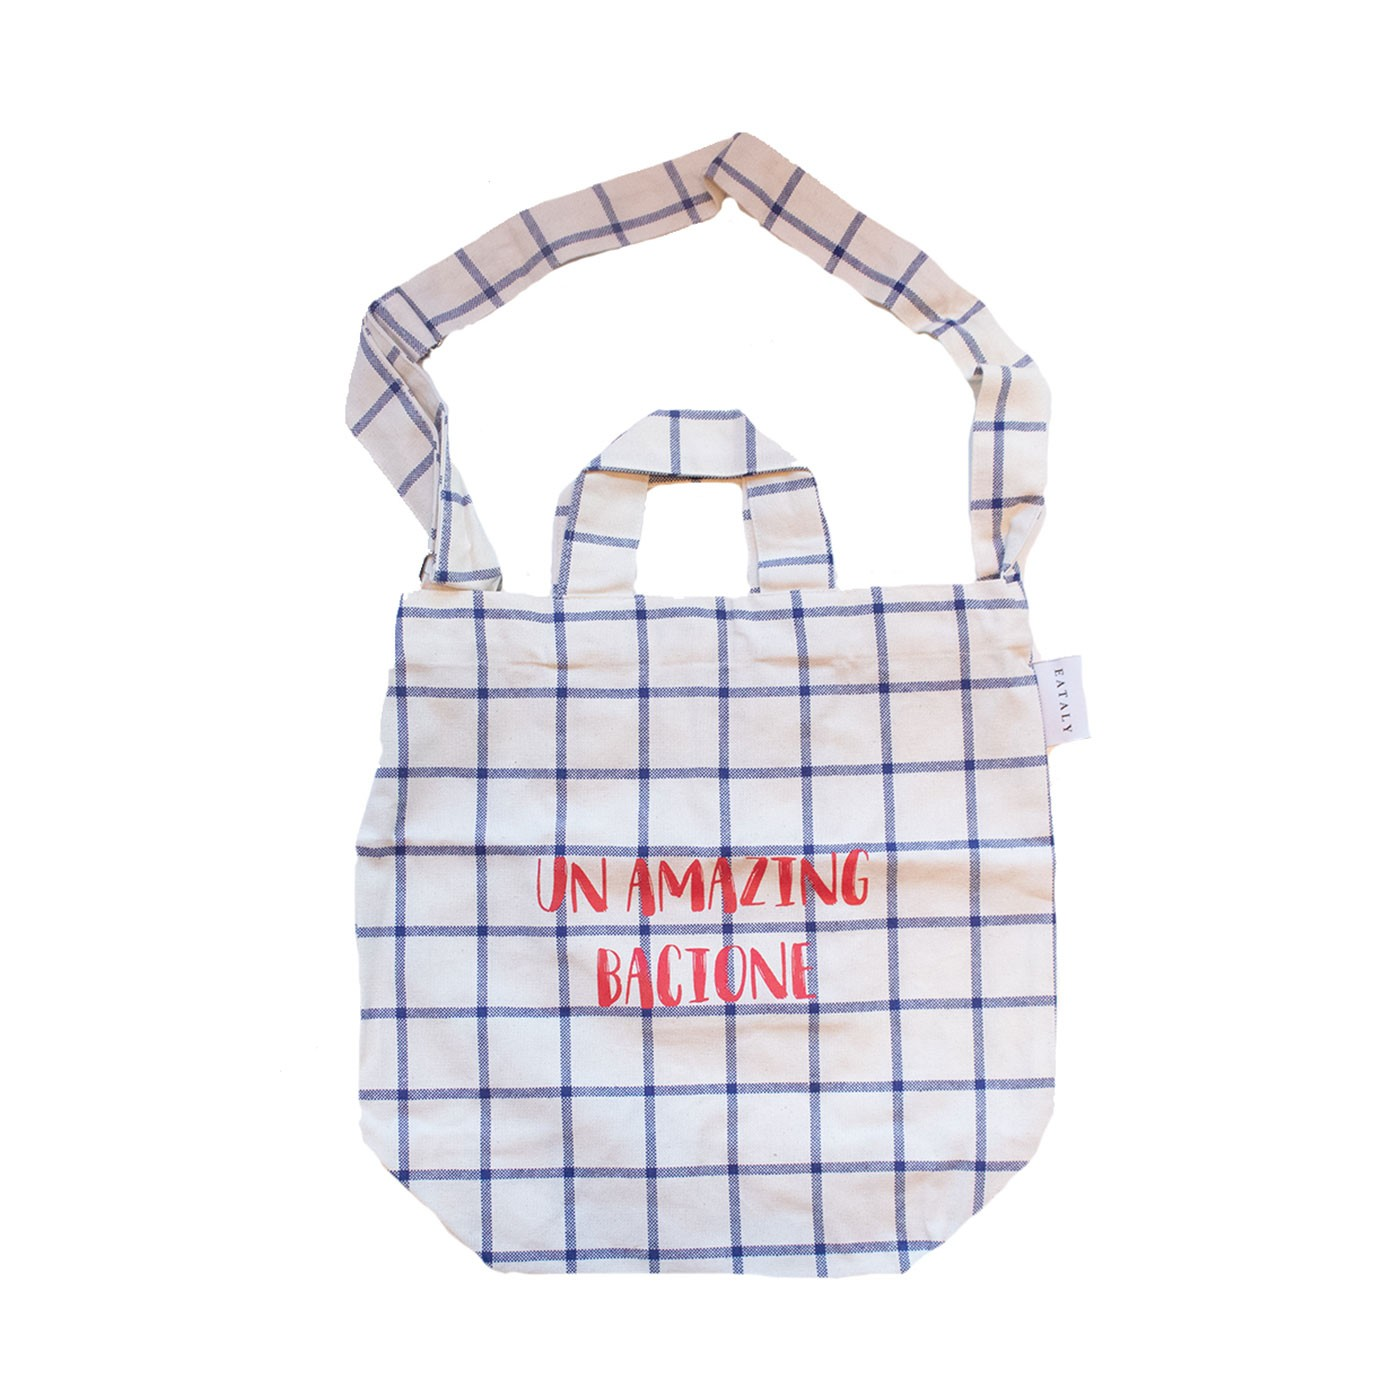 Un Amazing Bacione Canvas Bag - Eataly